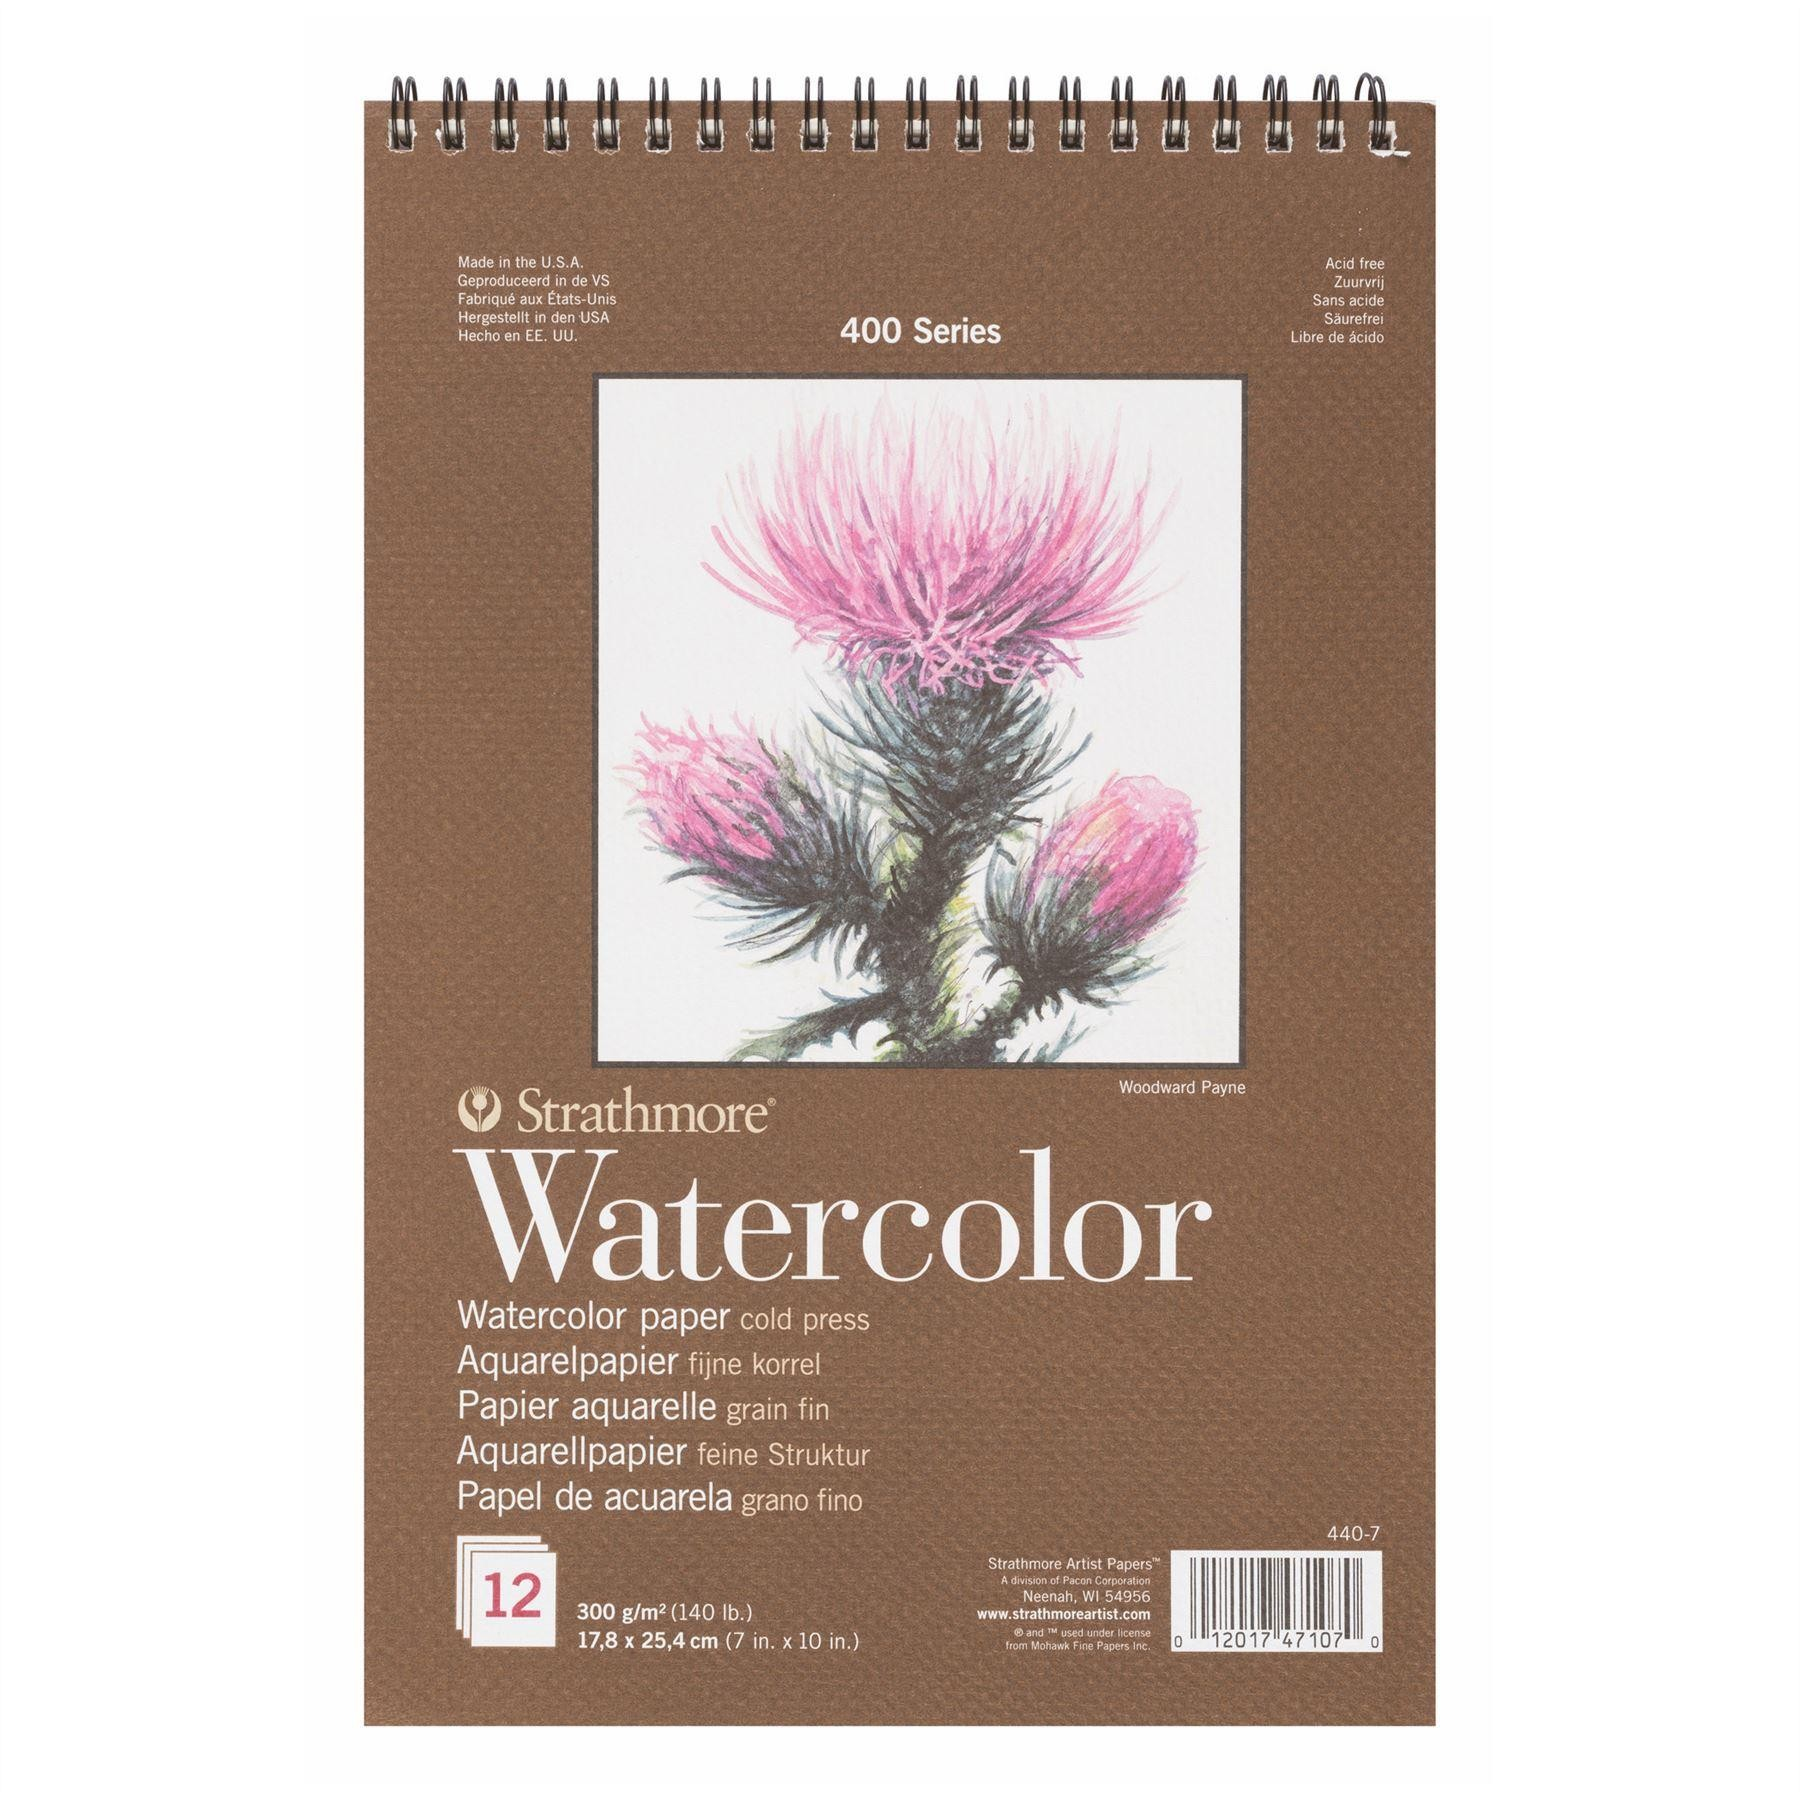 Strathmore 400 series Watercolour paper painting pad 300 GSM